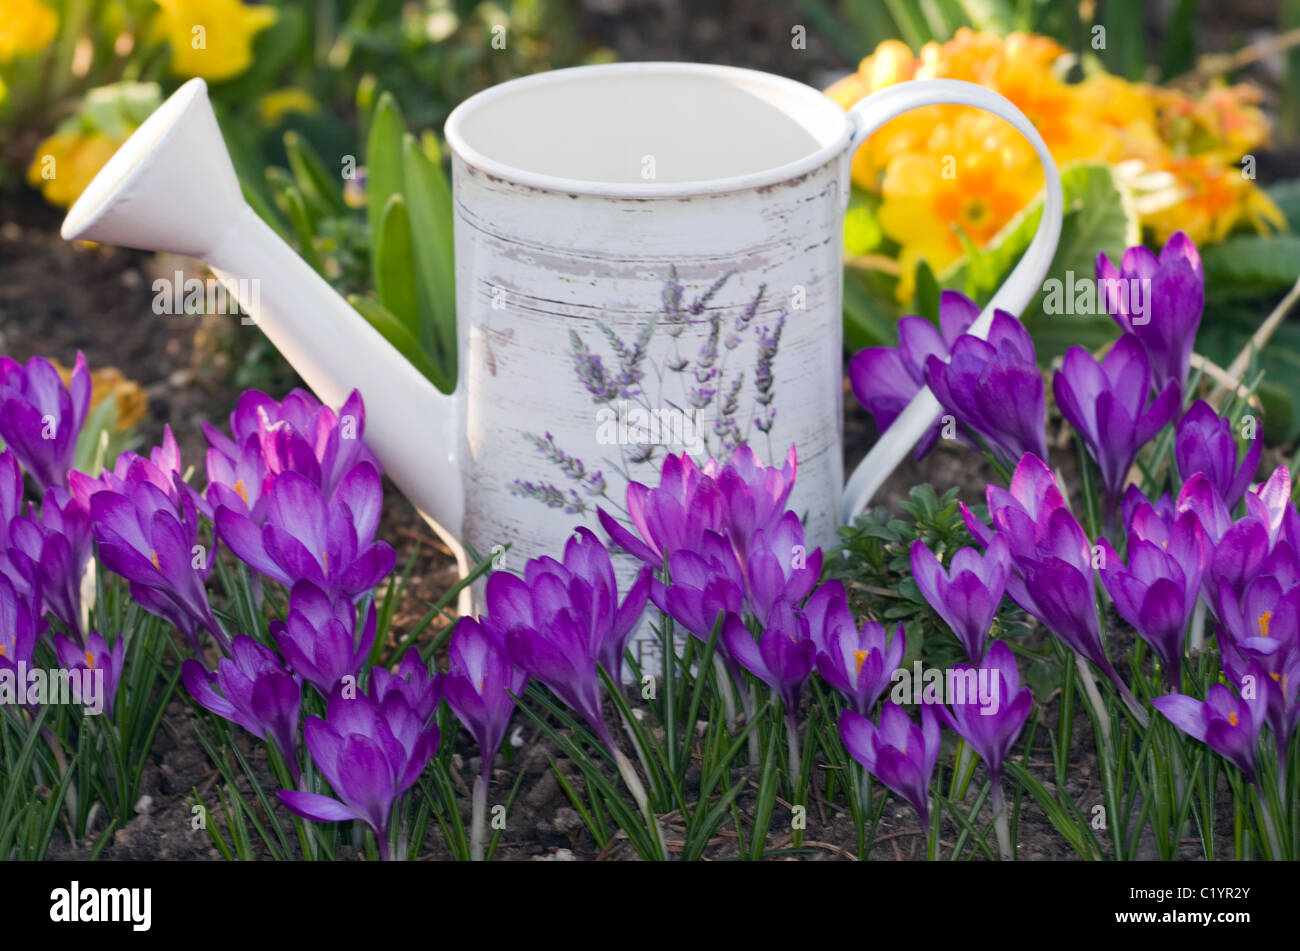 Watering can in the garden among the spring flowers. - Stock Image